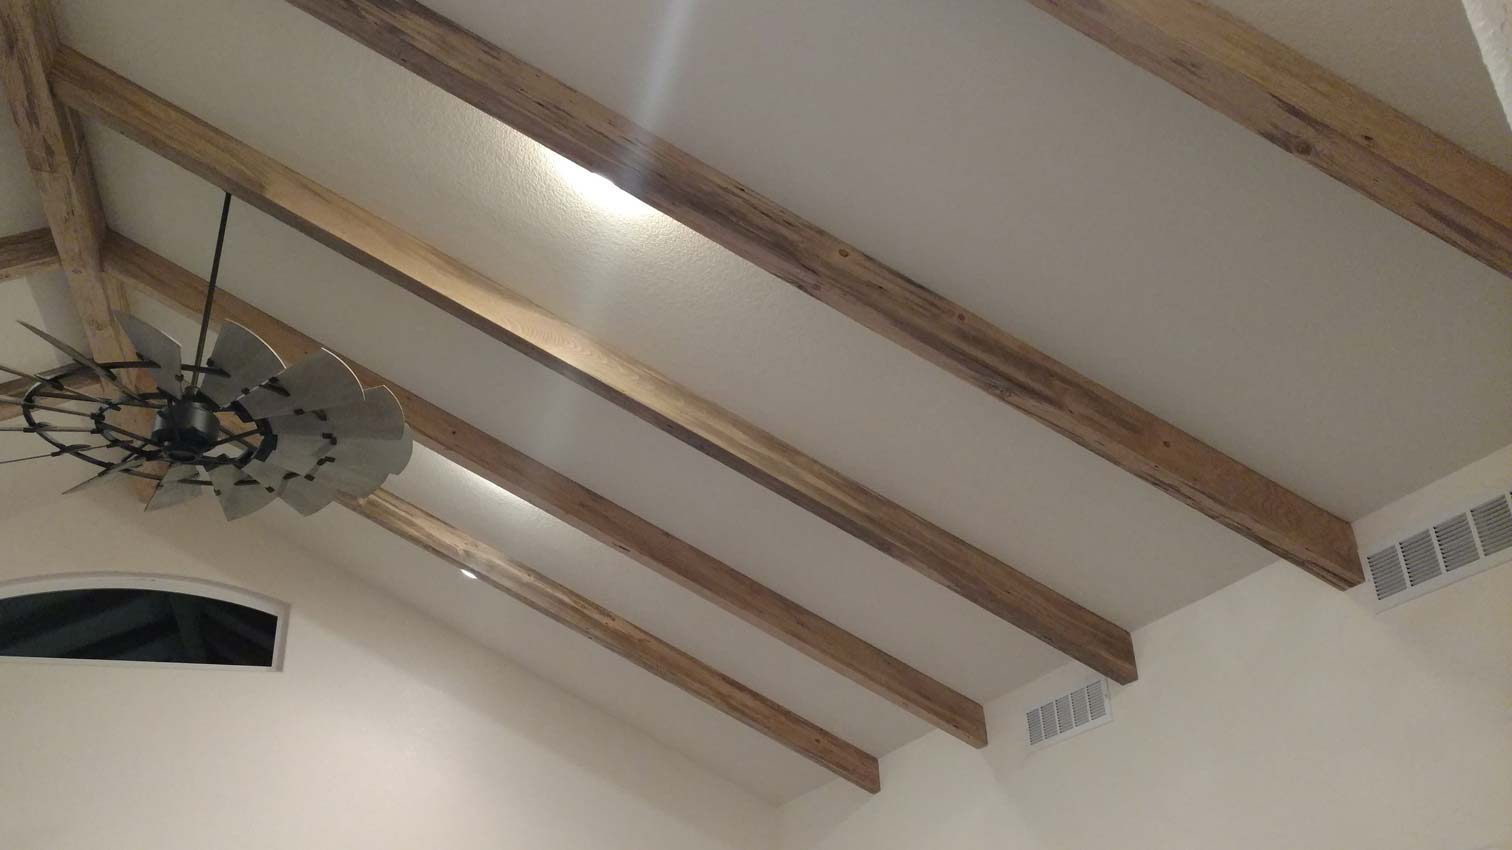 Beetle Kill Pine / Blue Stain Pine Box Beams